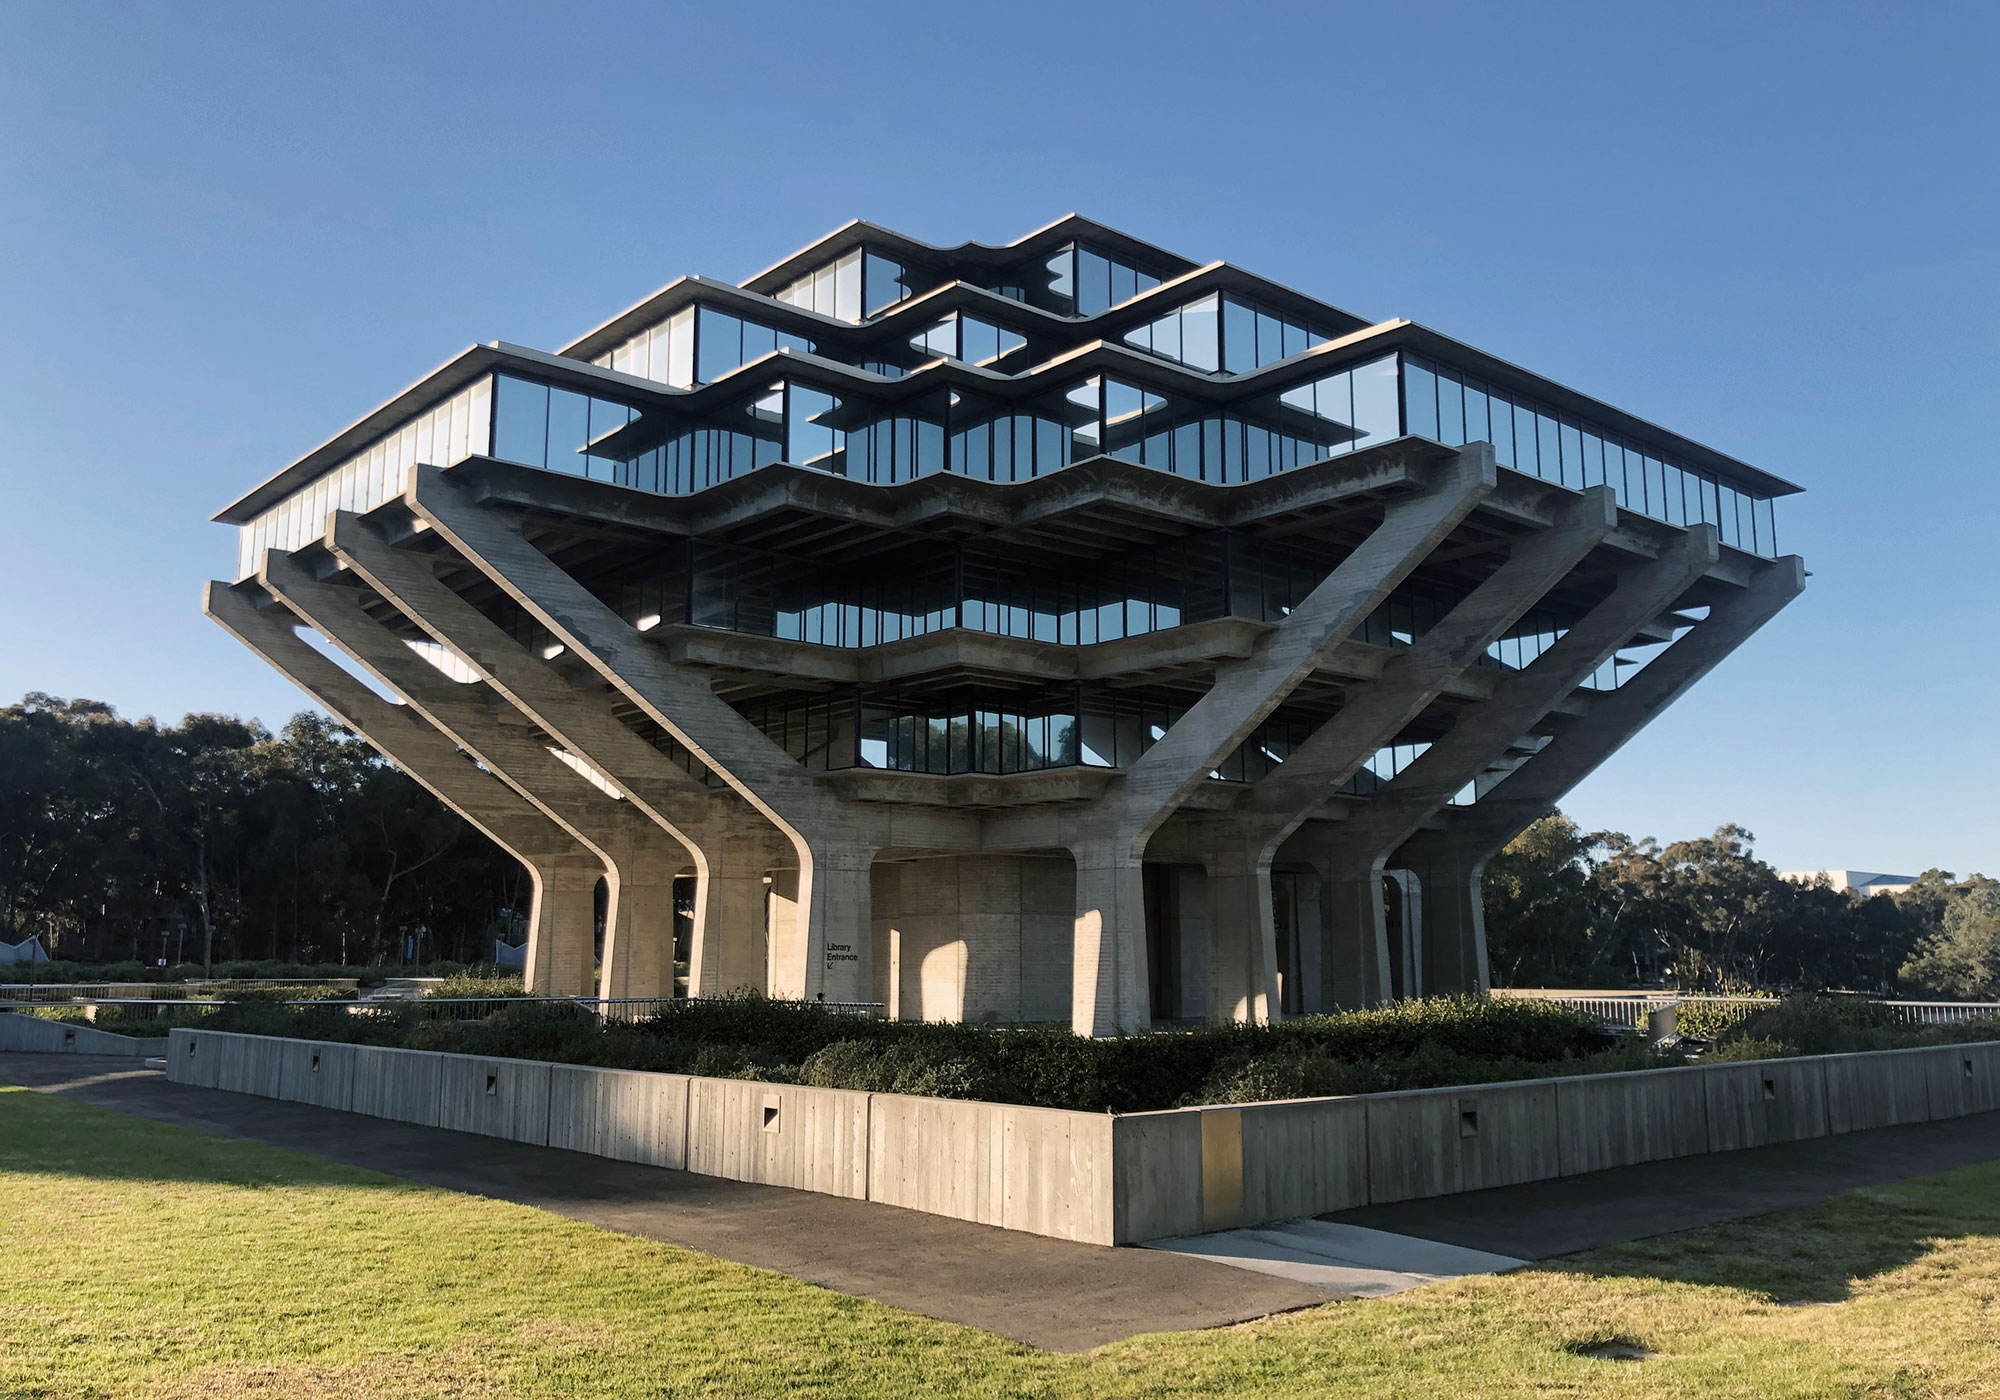 The Geisel Library by William Pereira & Associates in San Diego